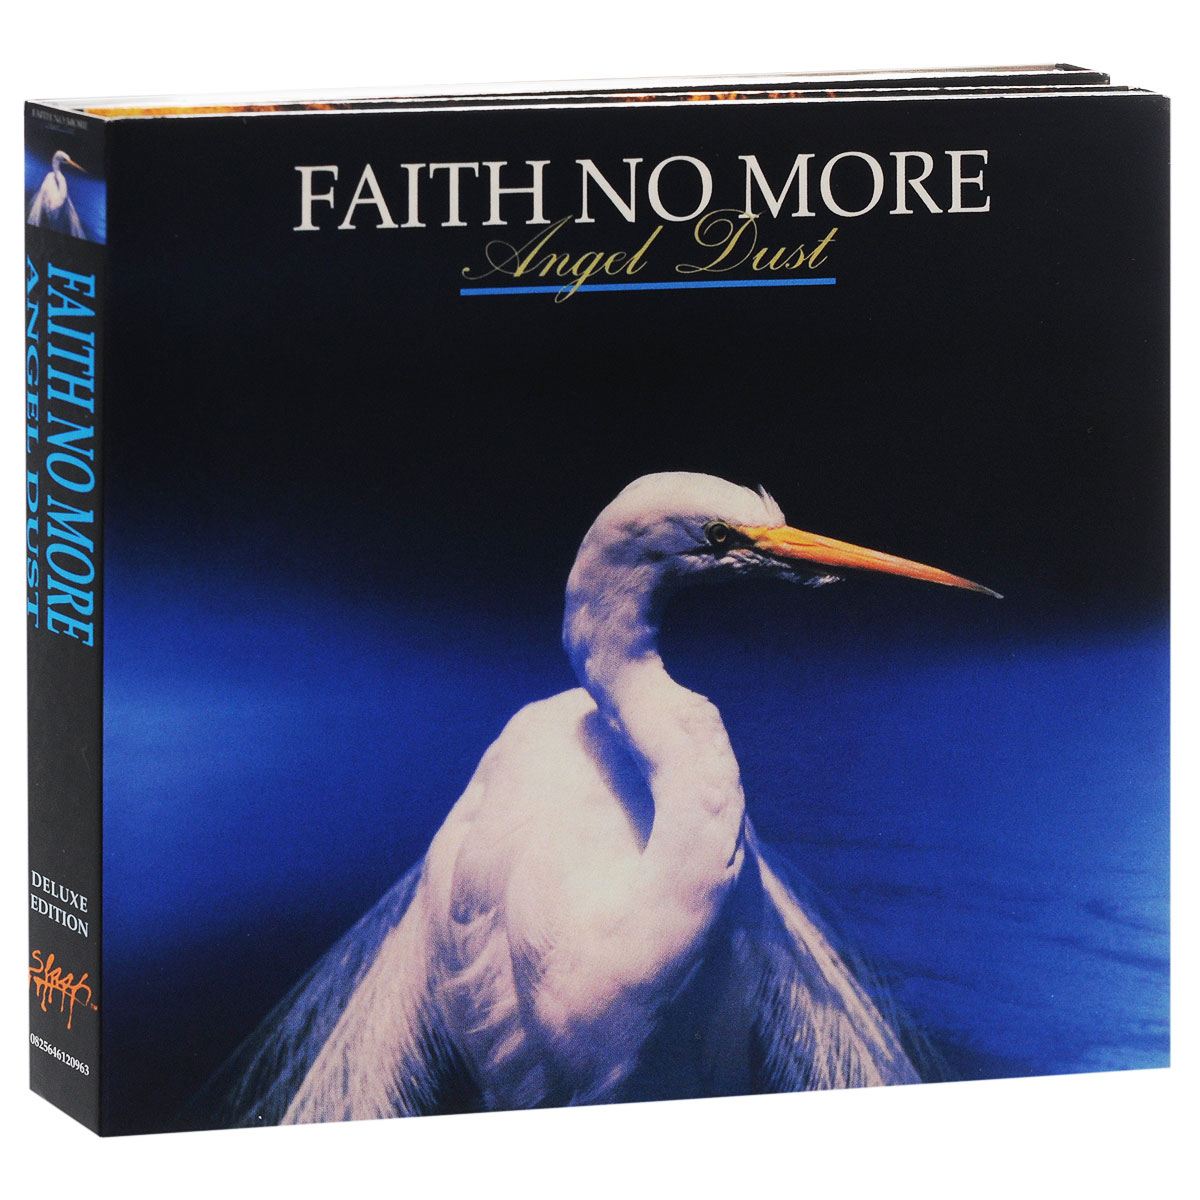 Faith No More Faith No More. Angel Dust. Deluxe Edition (2 CD) faith no more angel dusto 2cd cd